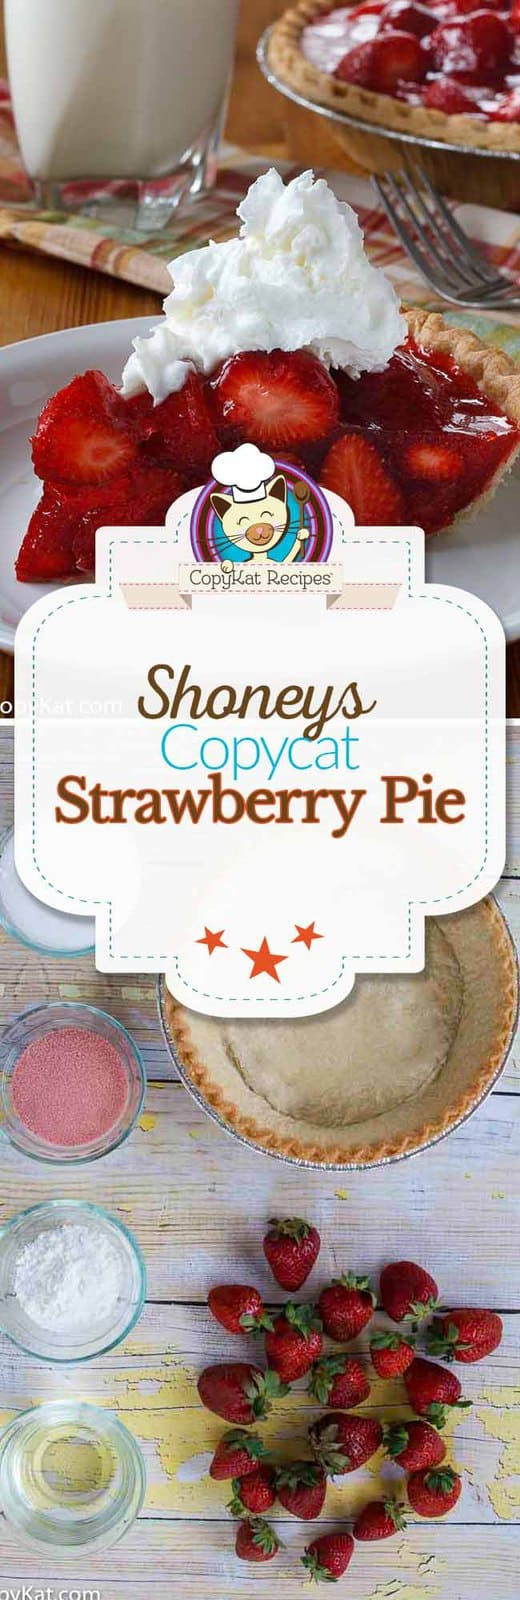 Make this copycat recipe for the famous Shoney's Strawberry Pie. #copycat #copycatrecipe #shoneys #strawberry #strawberrypie #freshstrawberries #cold